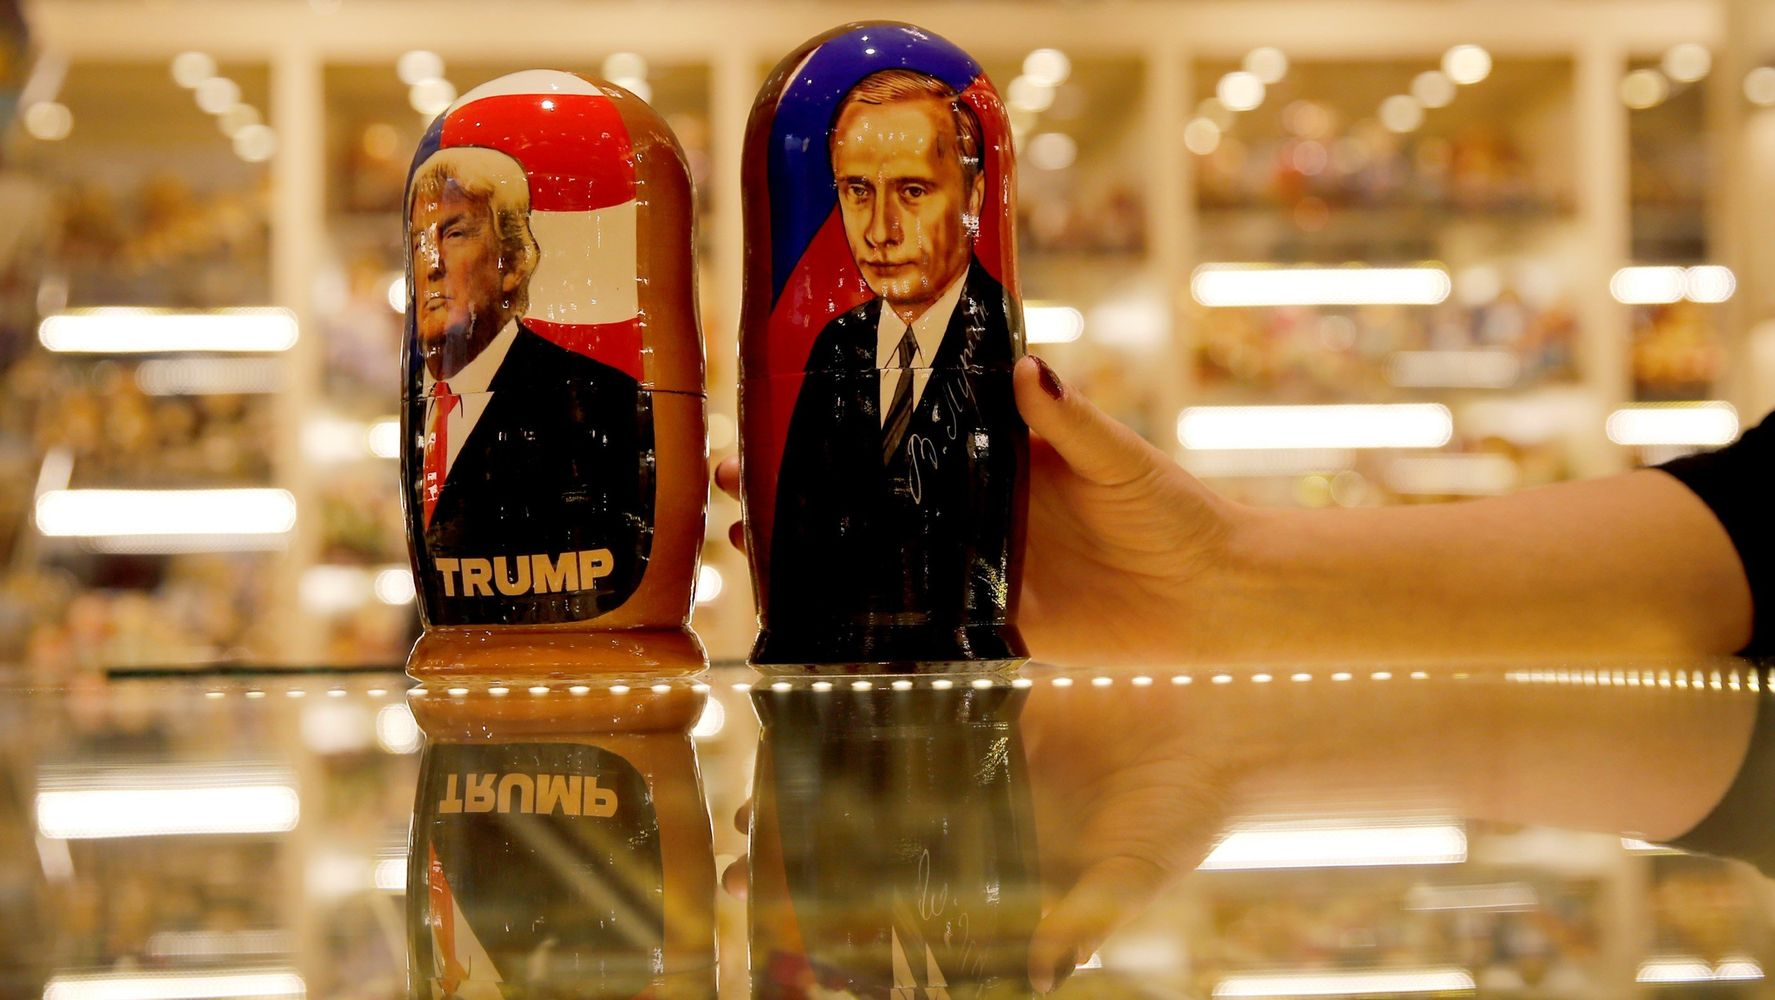 As Trump's Team Faces More Scrutiny Over Russia Ties